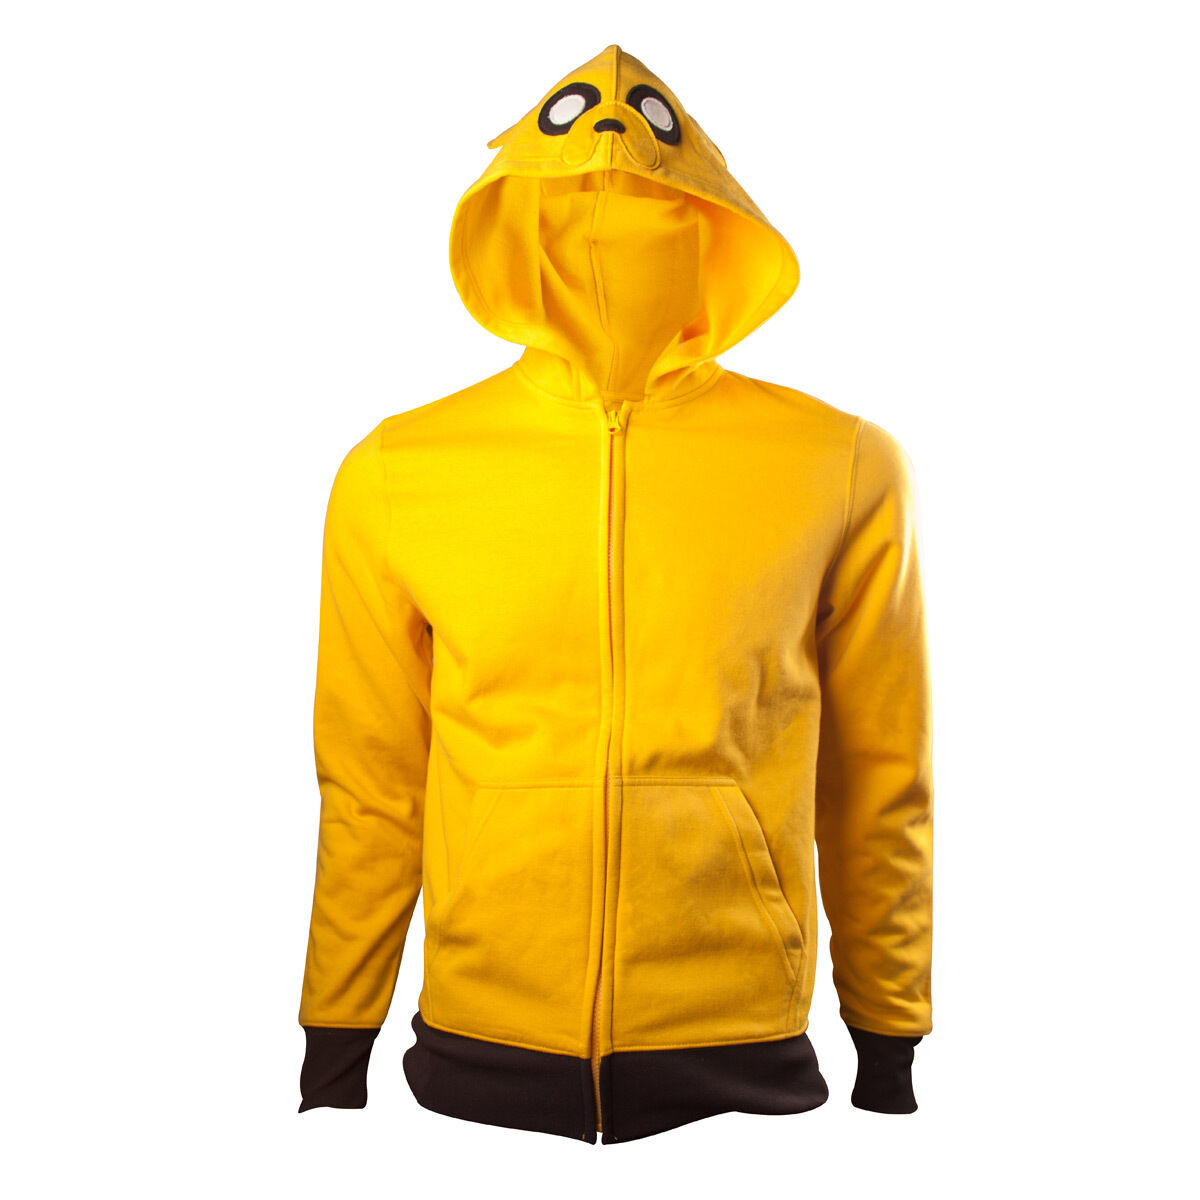 OFFICIAL Adventure Time Jake The Dog Cartoon Gelb Cosplay Hooded Hoodie Top